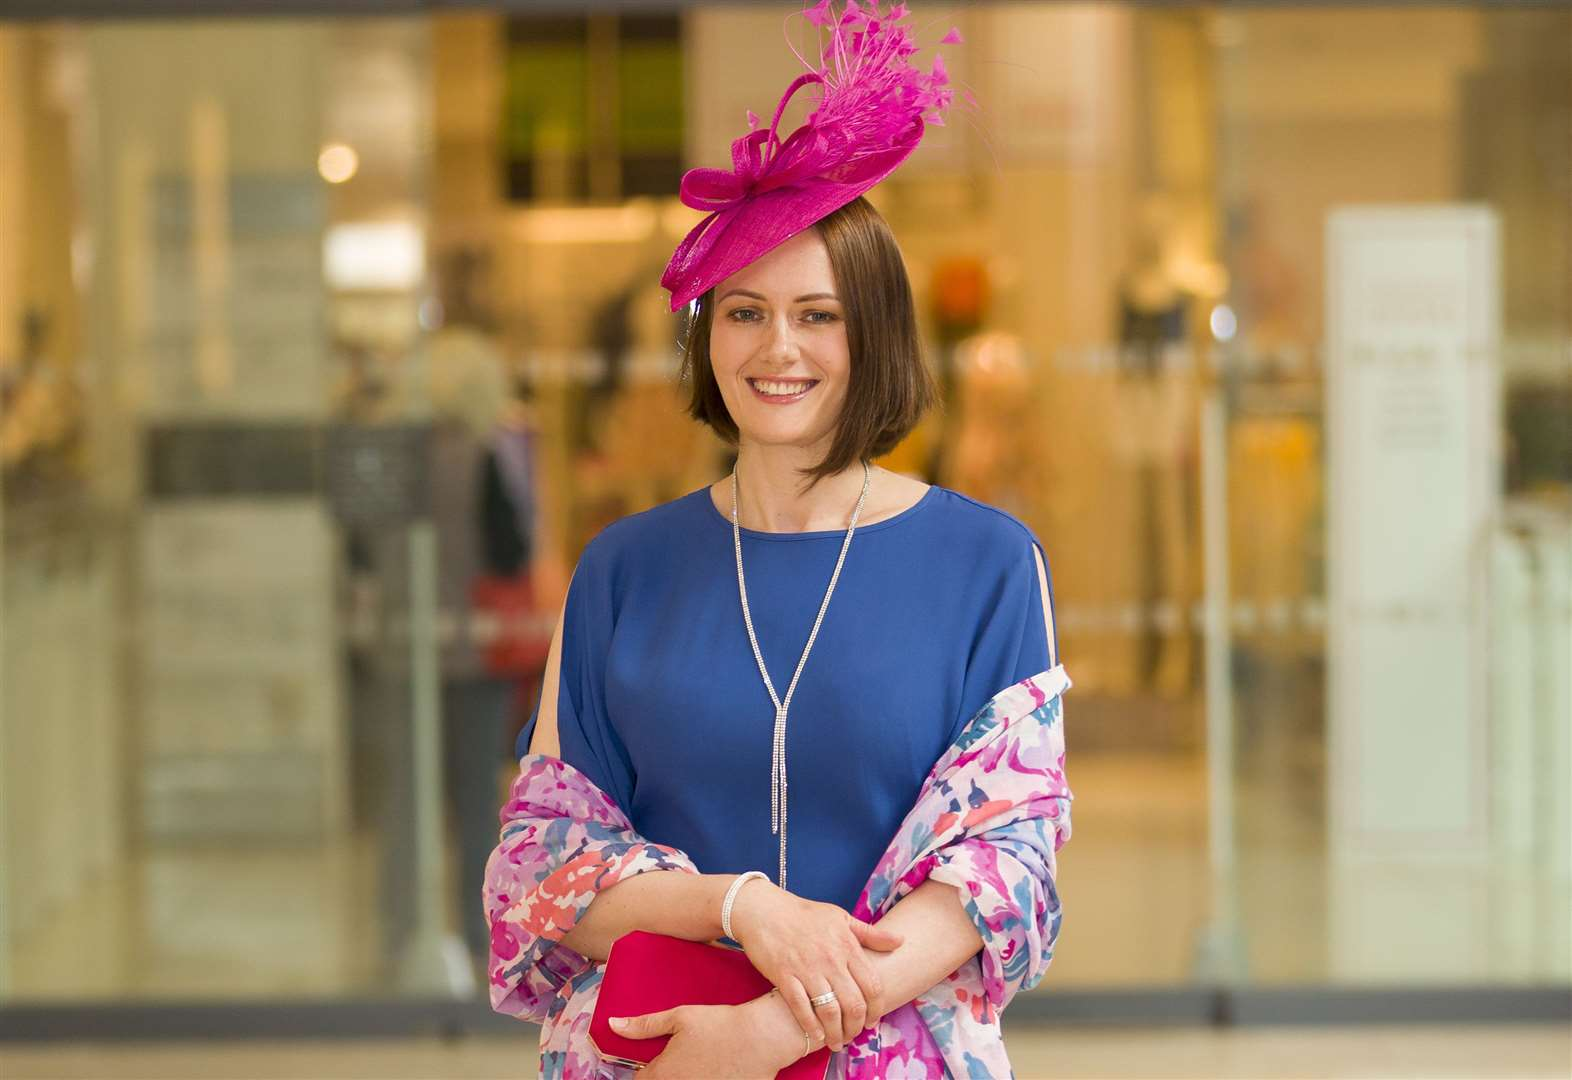 Newmarket's July Festival Best Dressed - meet the woman who has dropped 13 dress sizes